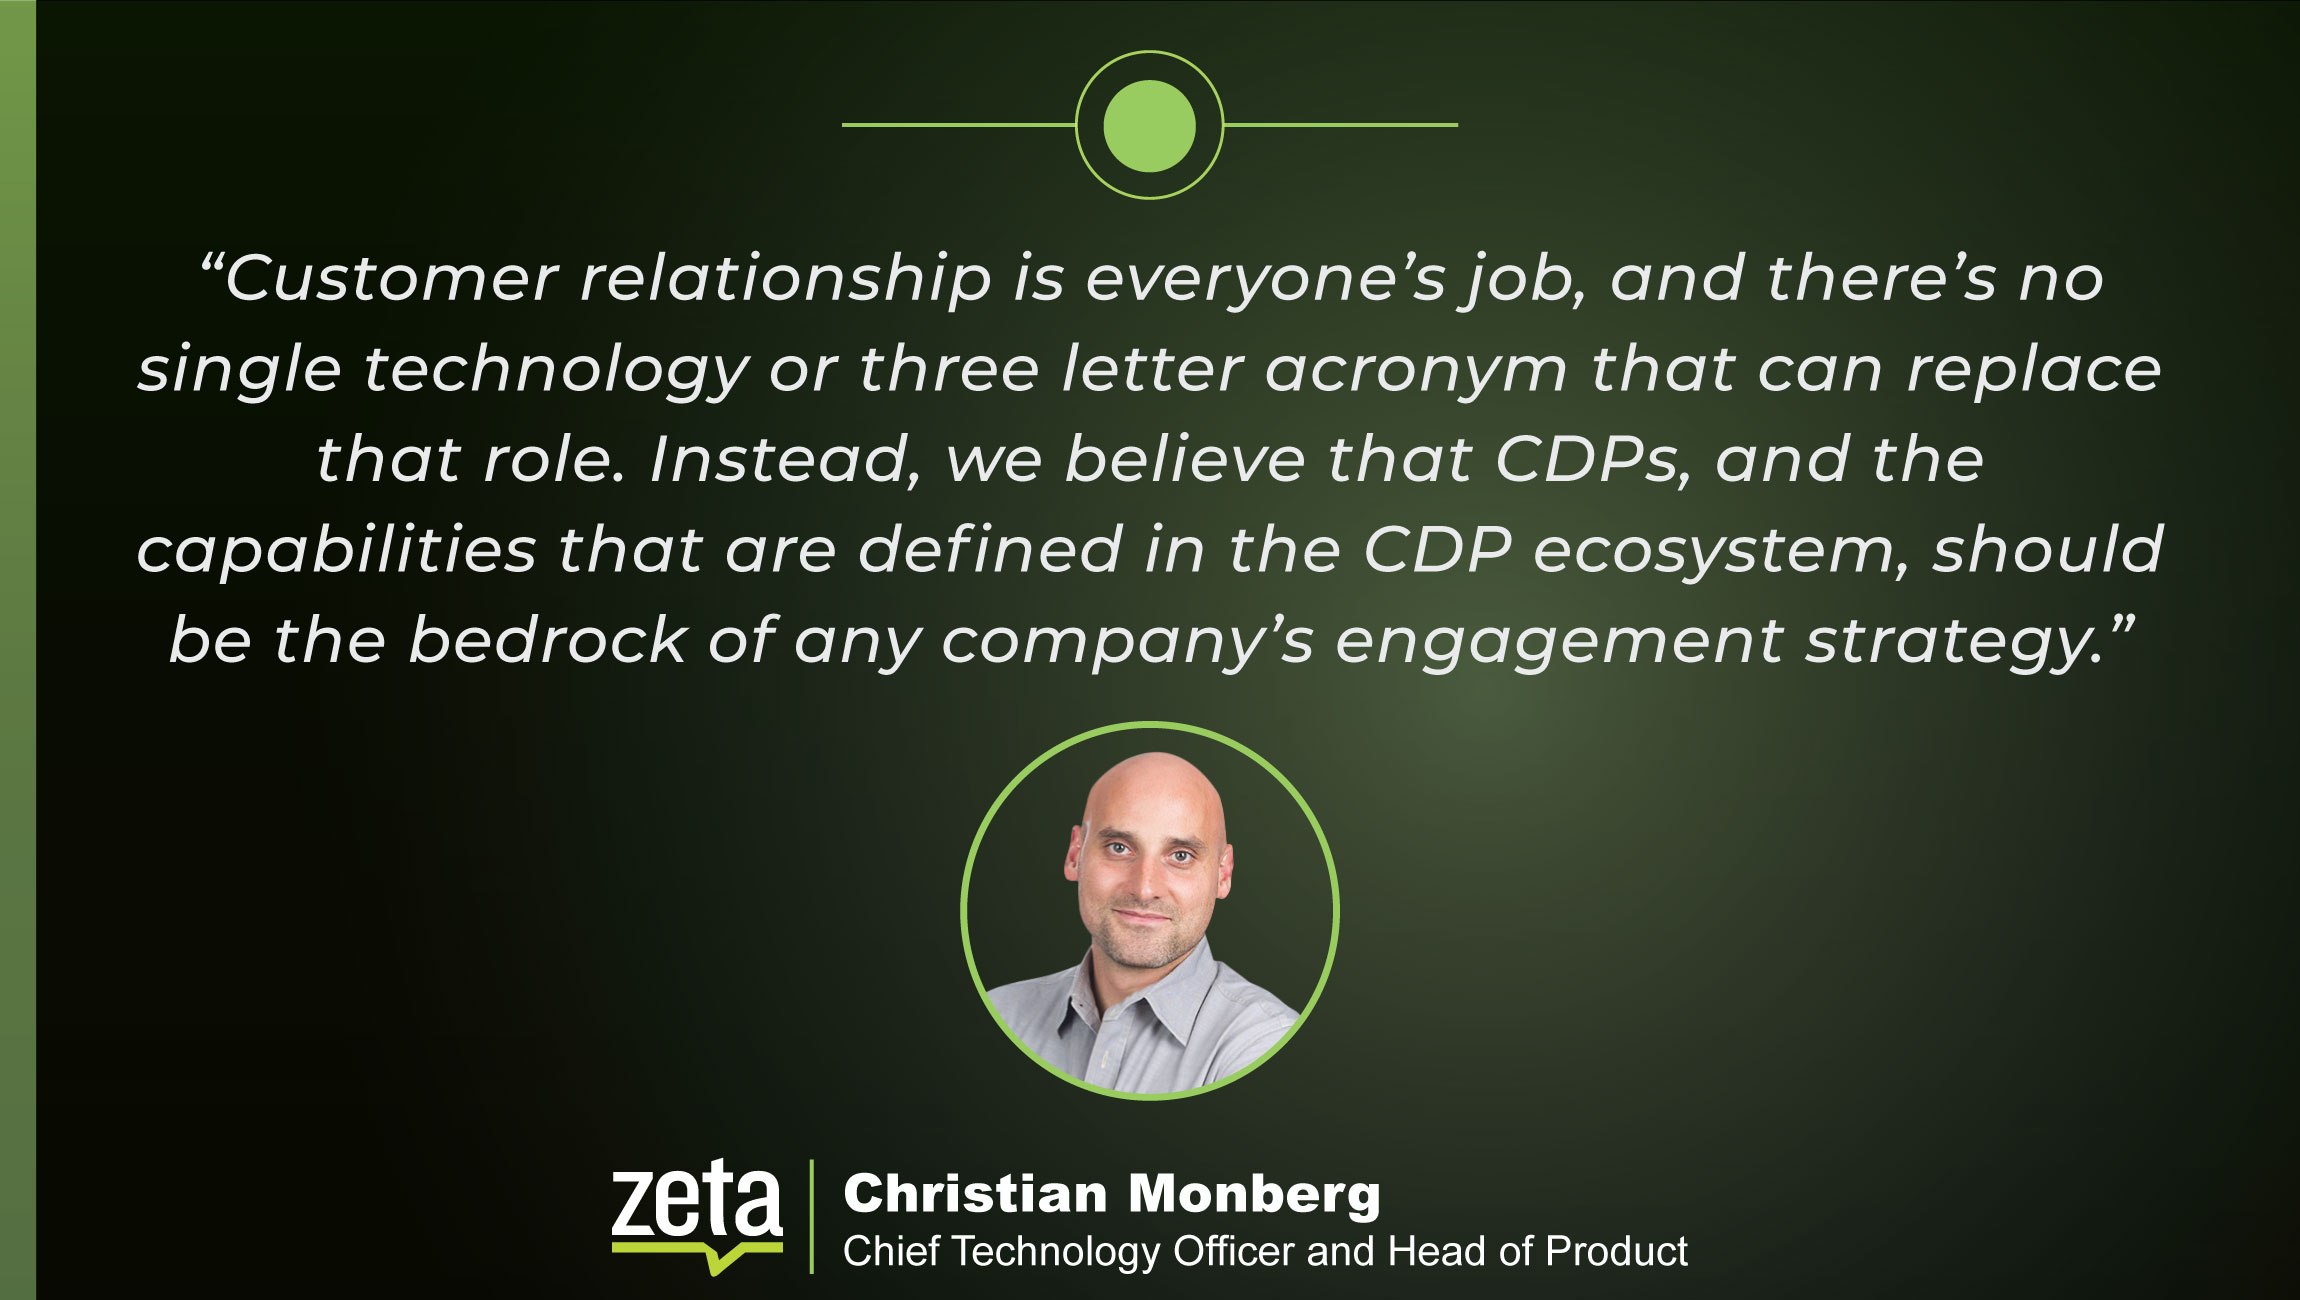 TechBytes with Christian Monberg, CTO and Head of Product at Zeta Global